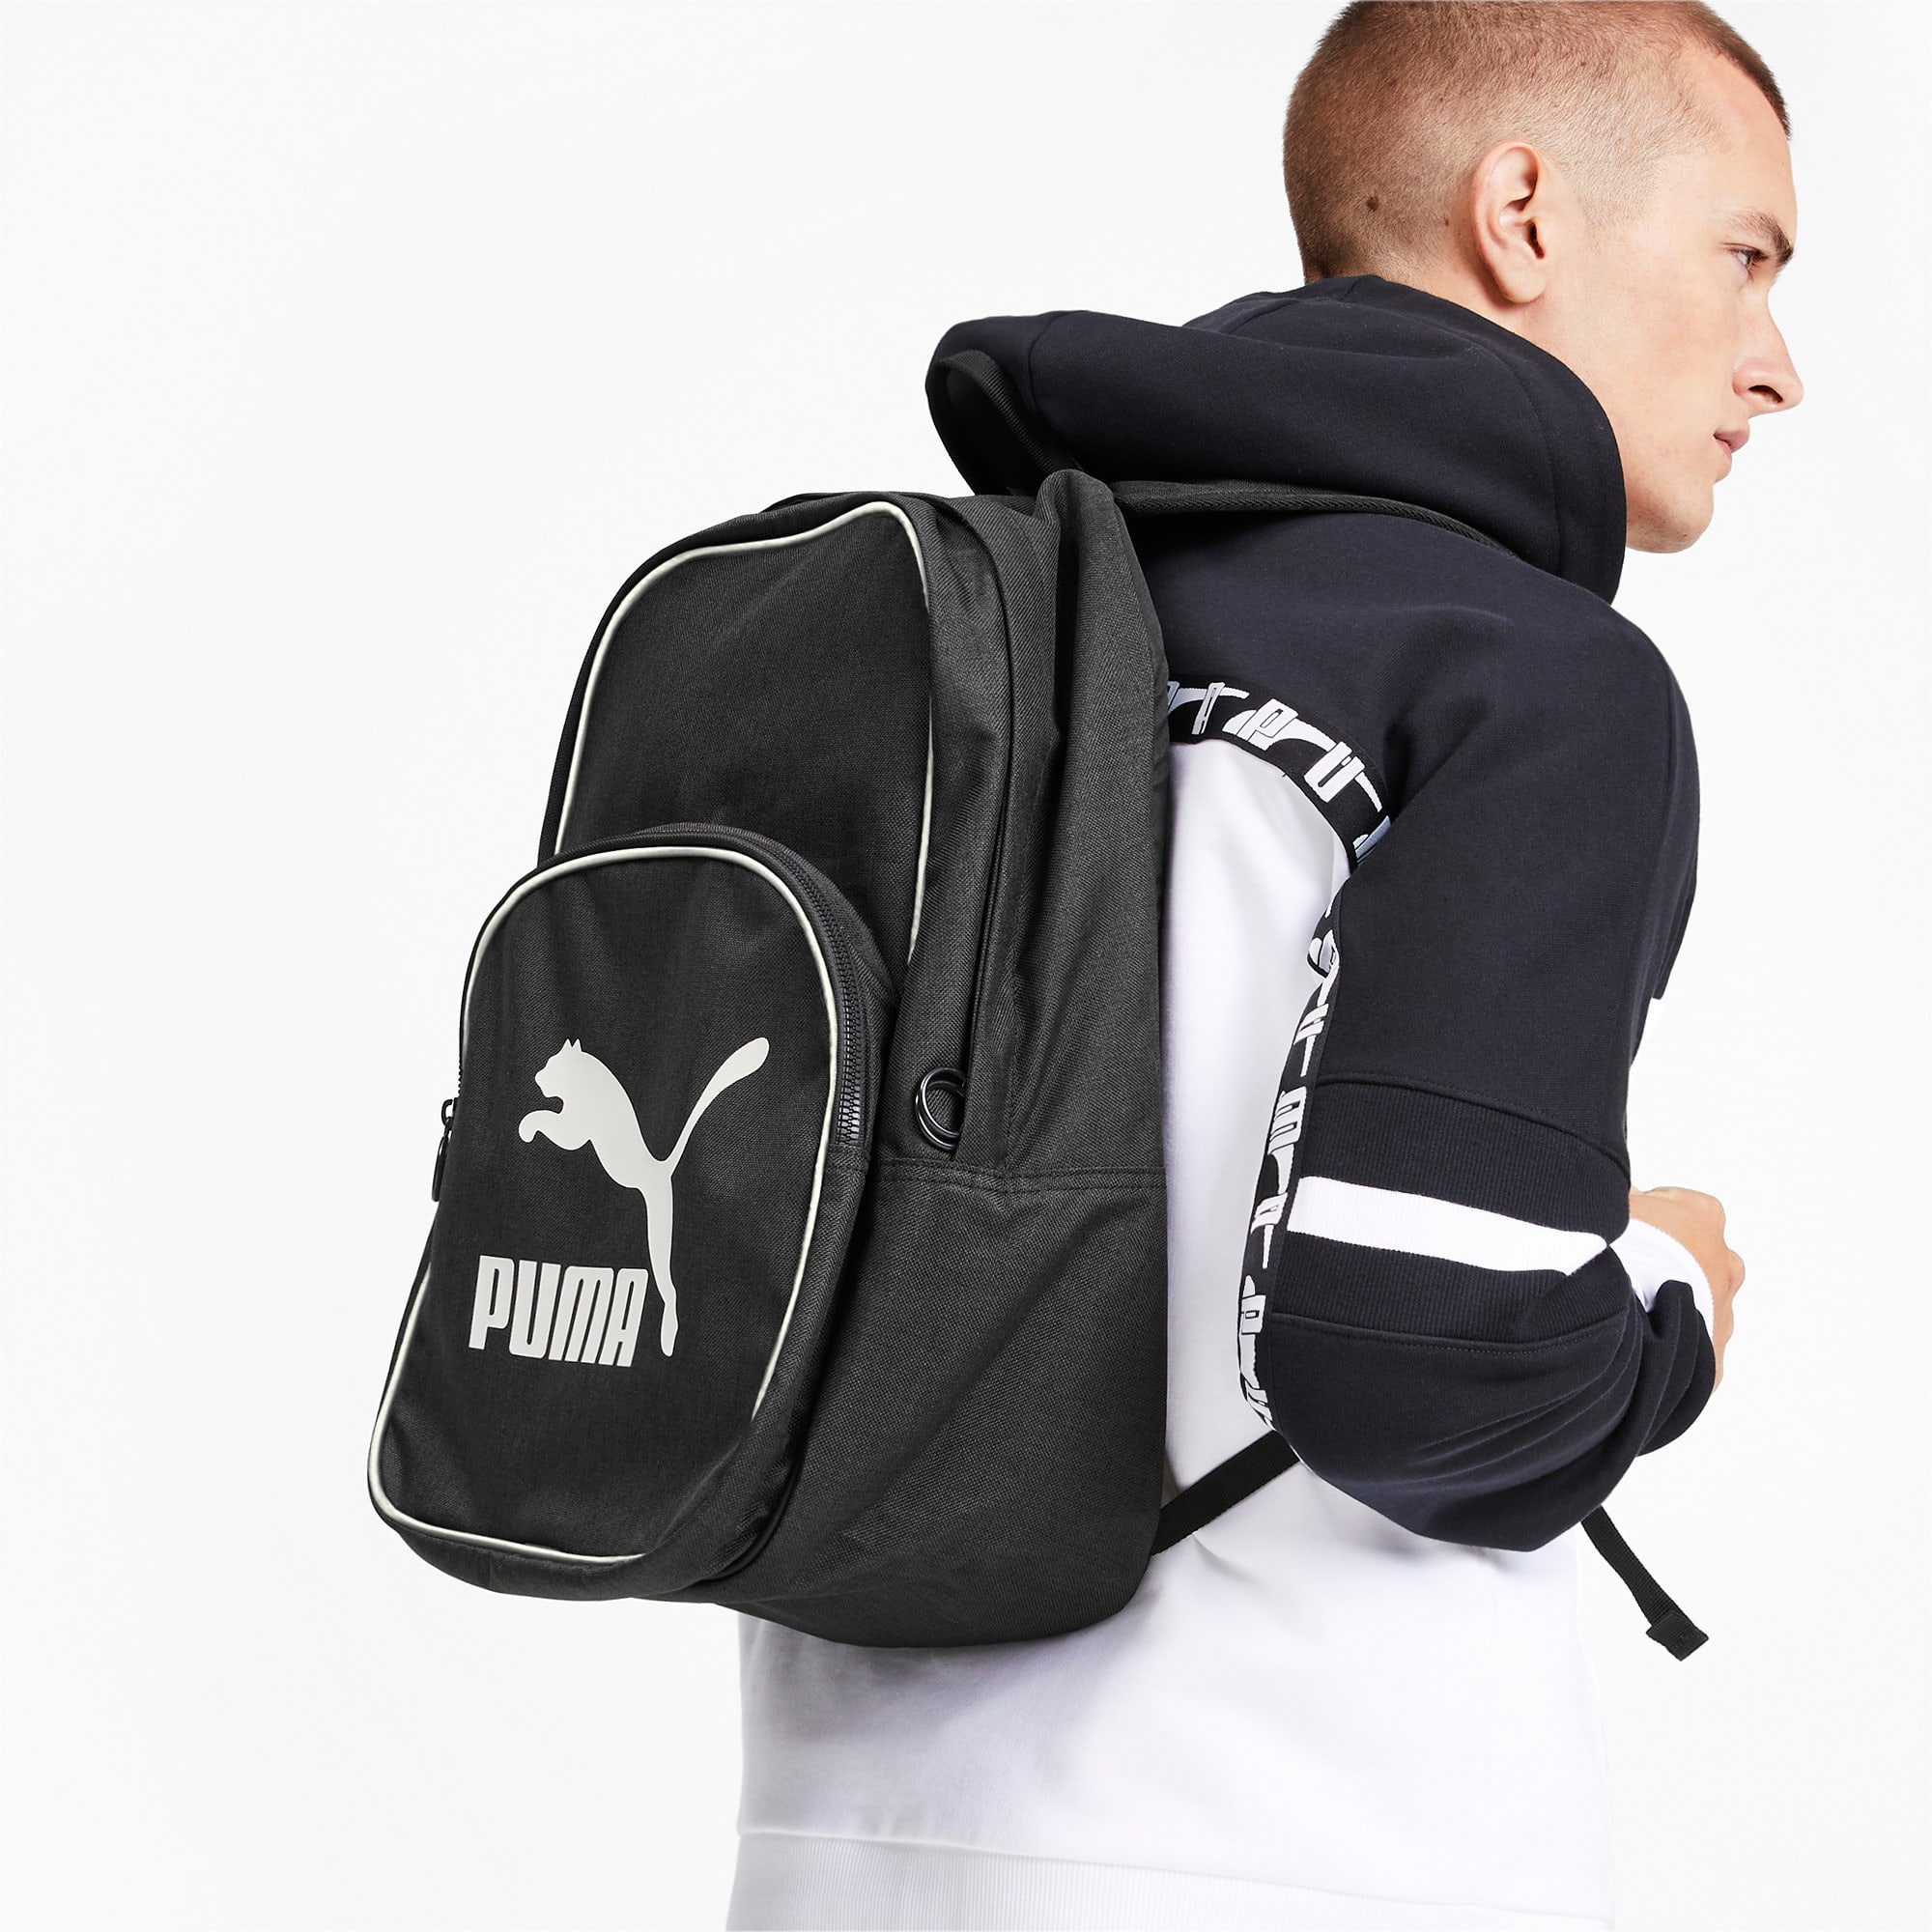 Thumbnail 2 of Originals Retro Woven Backpack, Puma Black, medium